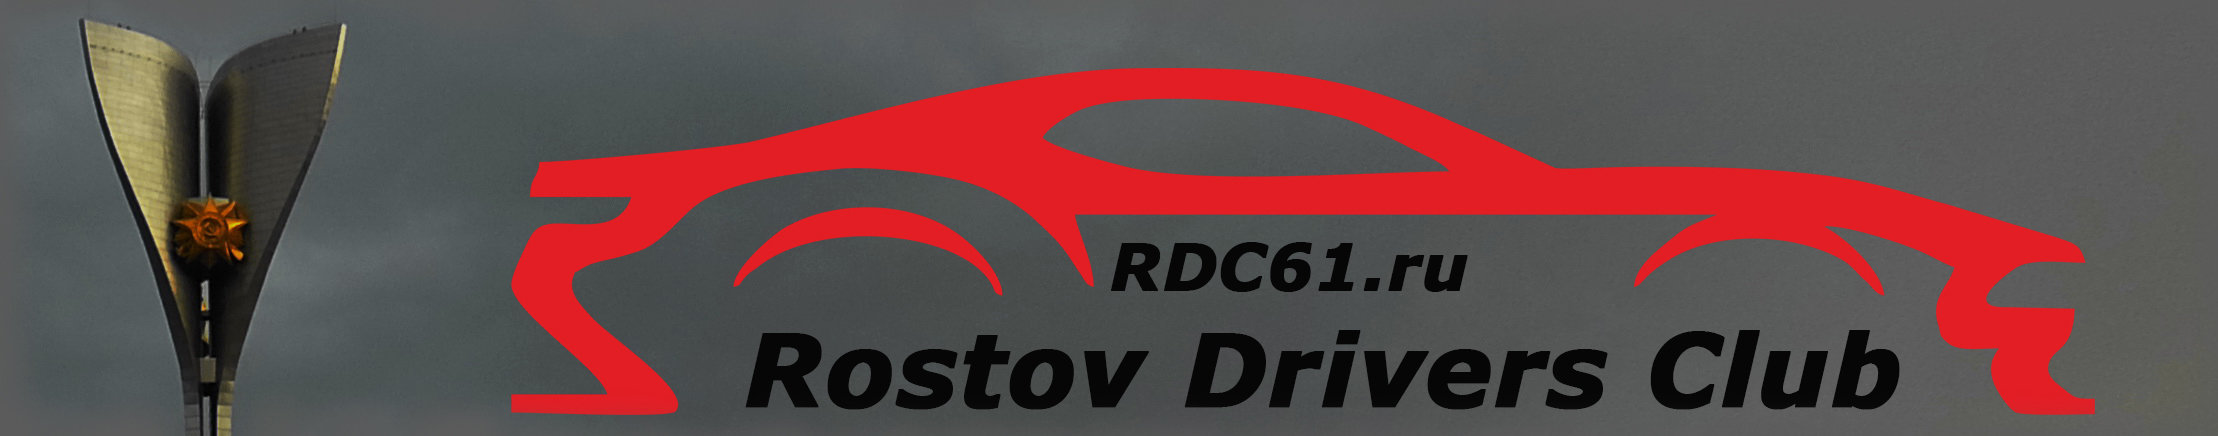 Rostov Drivers Club